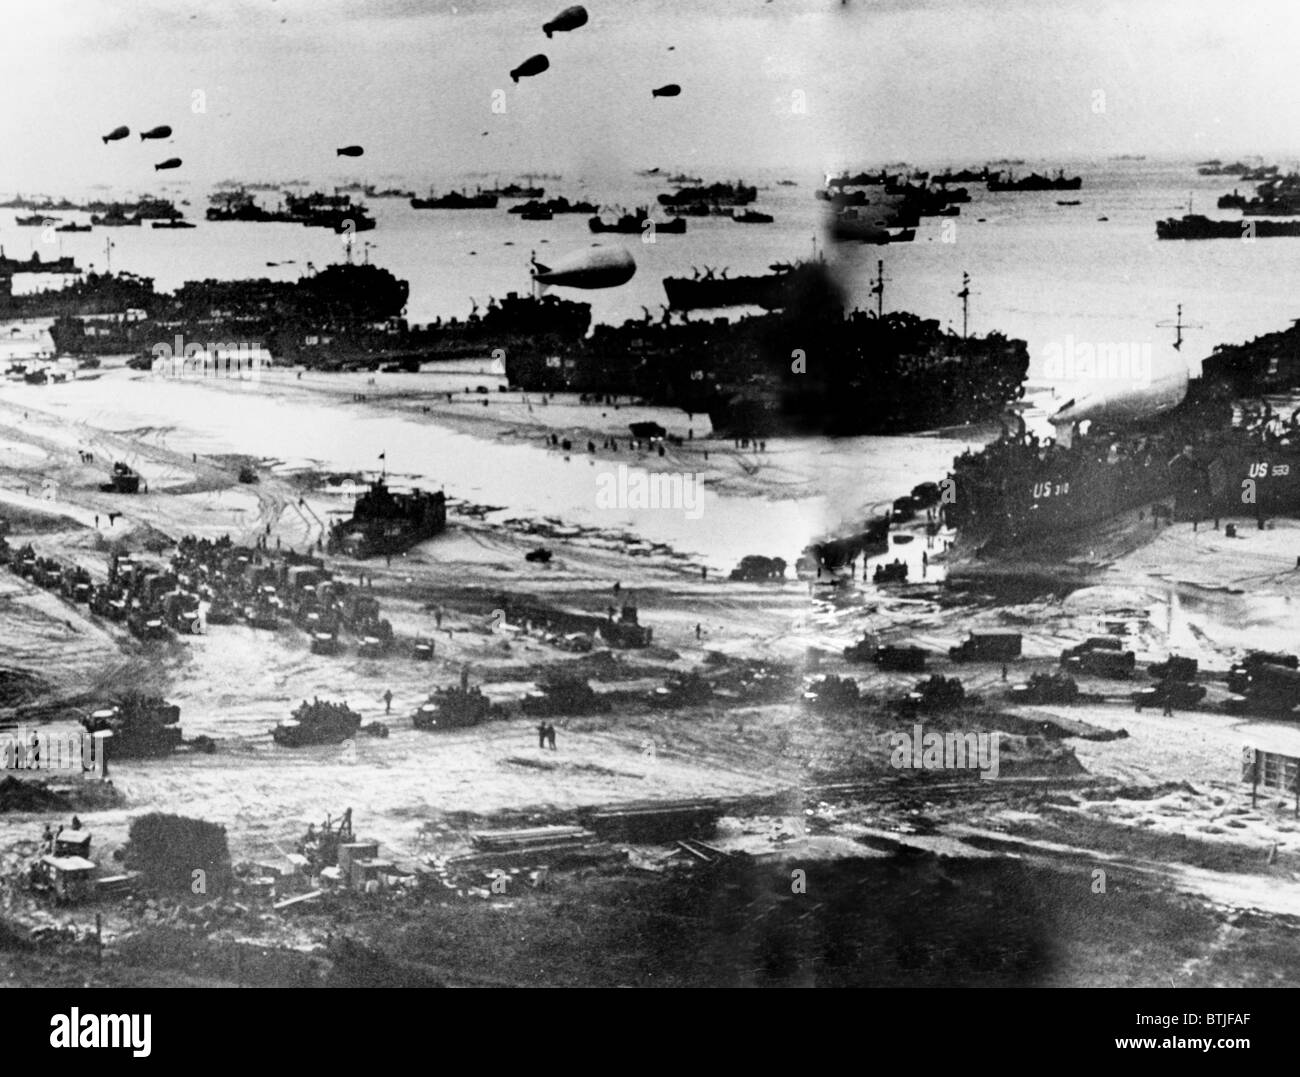 NORMANDY, beaches on D-Day - Stock Image